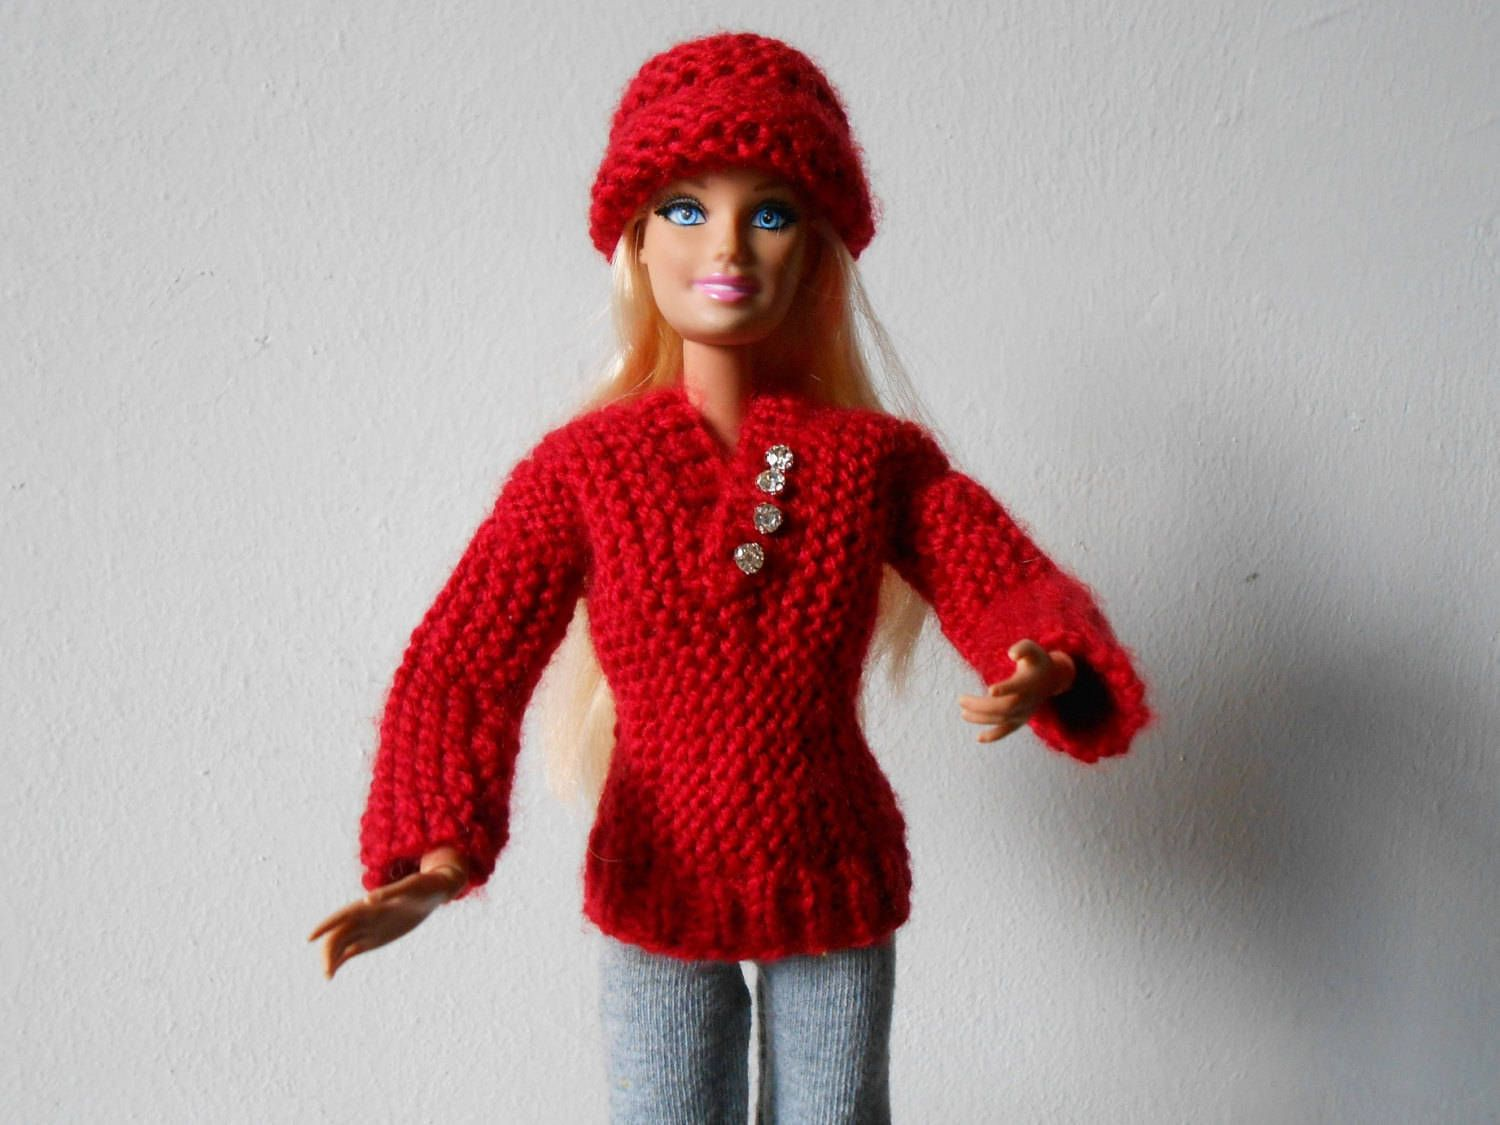 Hand knitted  burgundy Barbie sweater and hat, bordeaux sweater + hat for Barbie doll, Barbie pullover, Barbie beanie. di lepropostedimari su Etsy